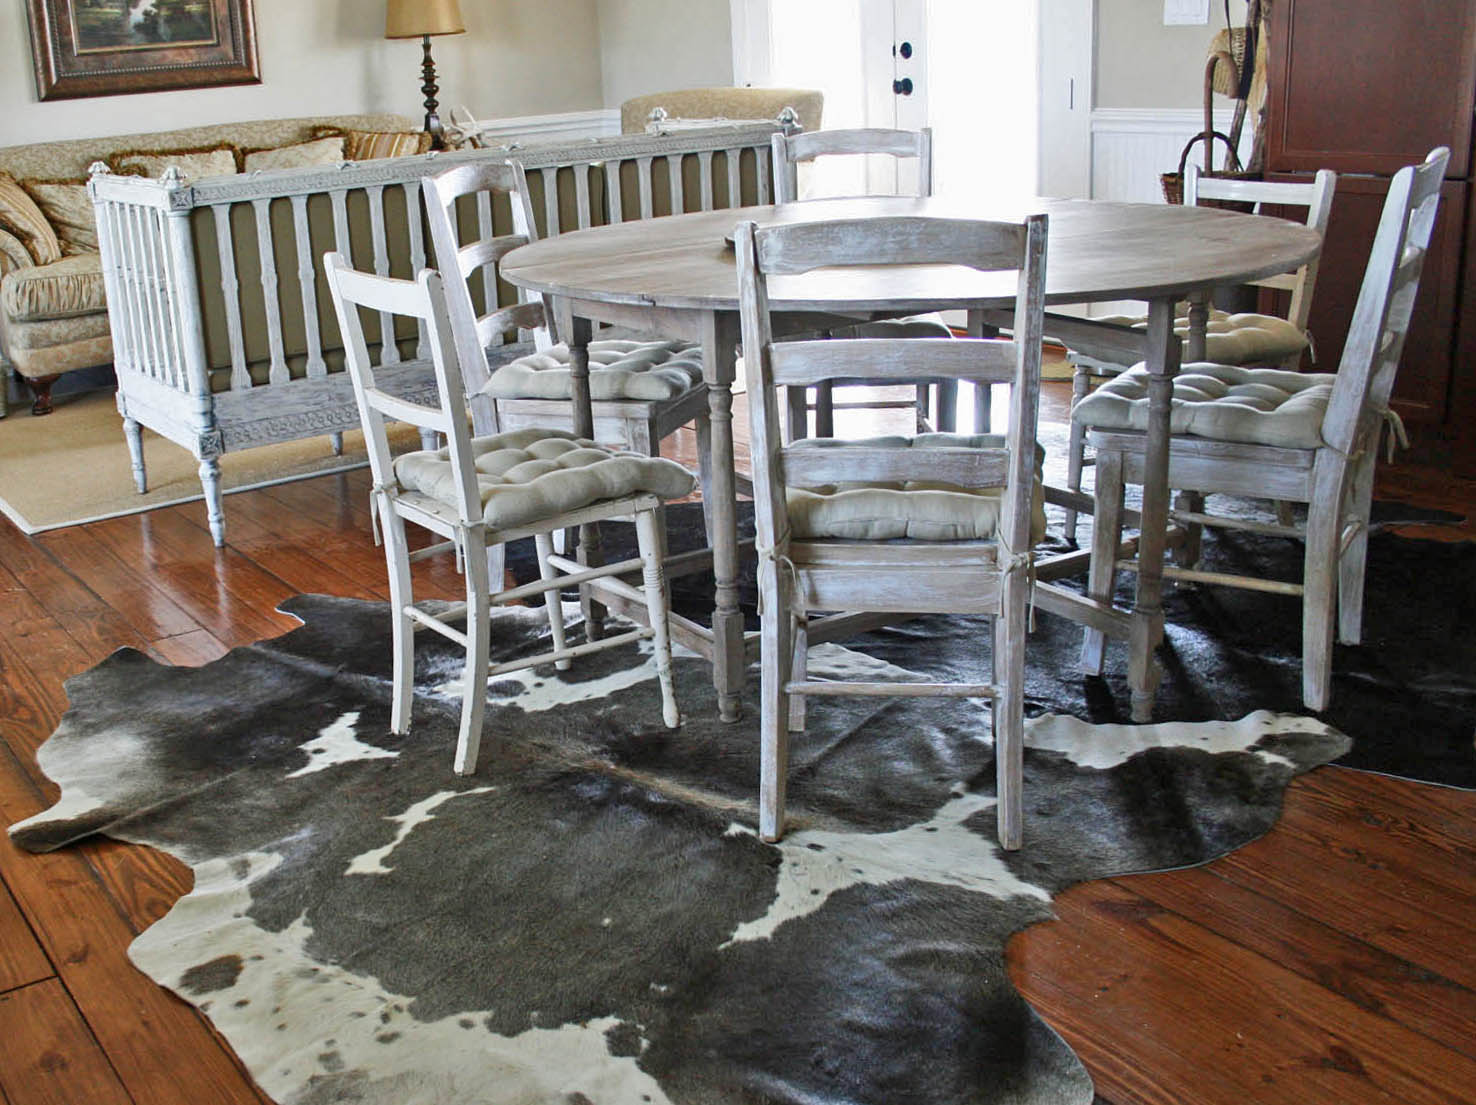 skinny on decorating with cowhide rugs rugs under kitchen table On a sad note it did not occur to me beforehand that the black rug would make every hair shed by our collie as obvious as dandruff on a dark suit